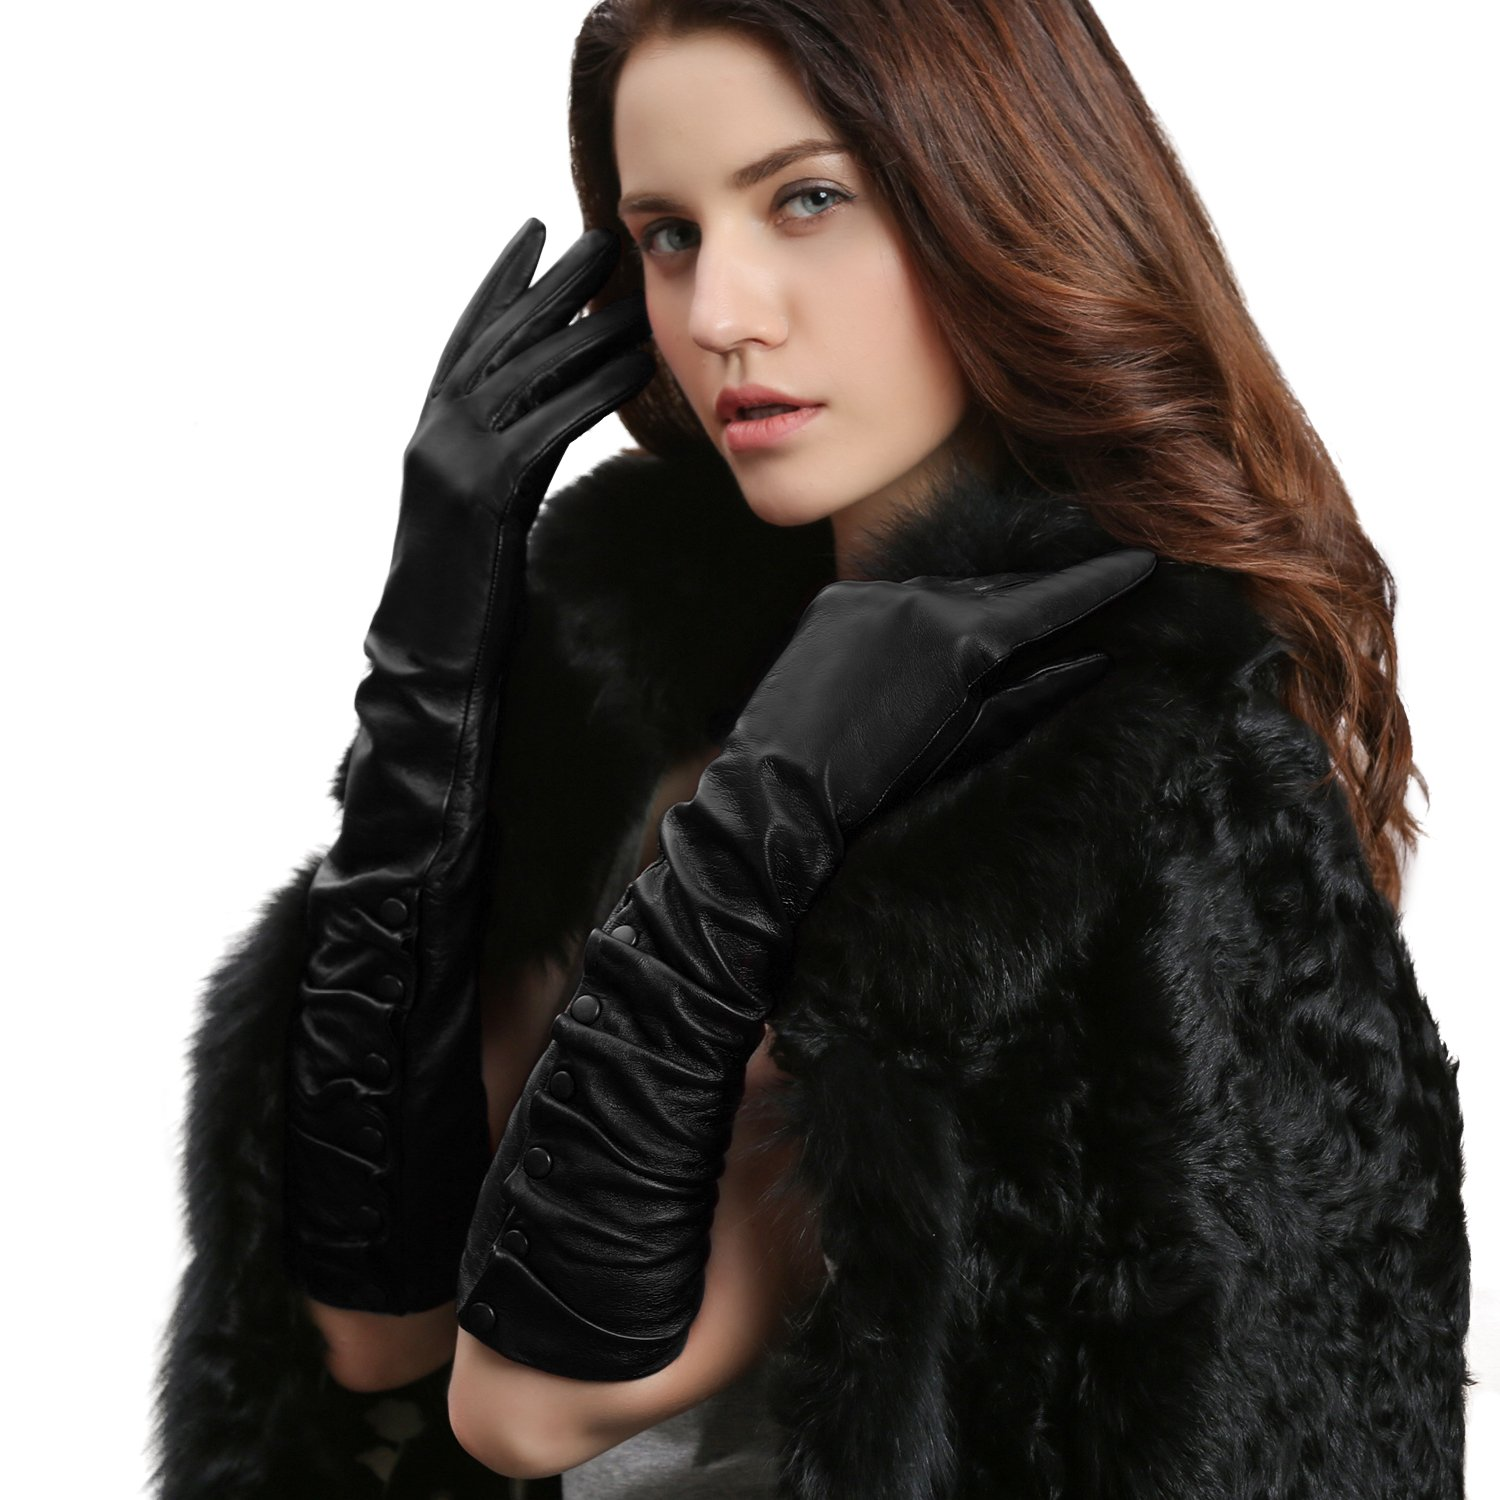 GSG Ladies Stylish Winter Warm Genuine Leather Elbow Gloves Arm Warmer Dress Gloves Womens Party Evening Accessory Nice Gifts Black 7.5